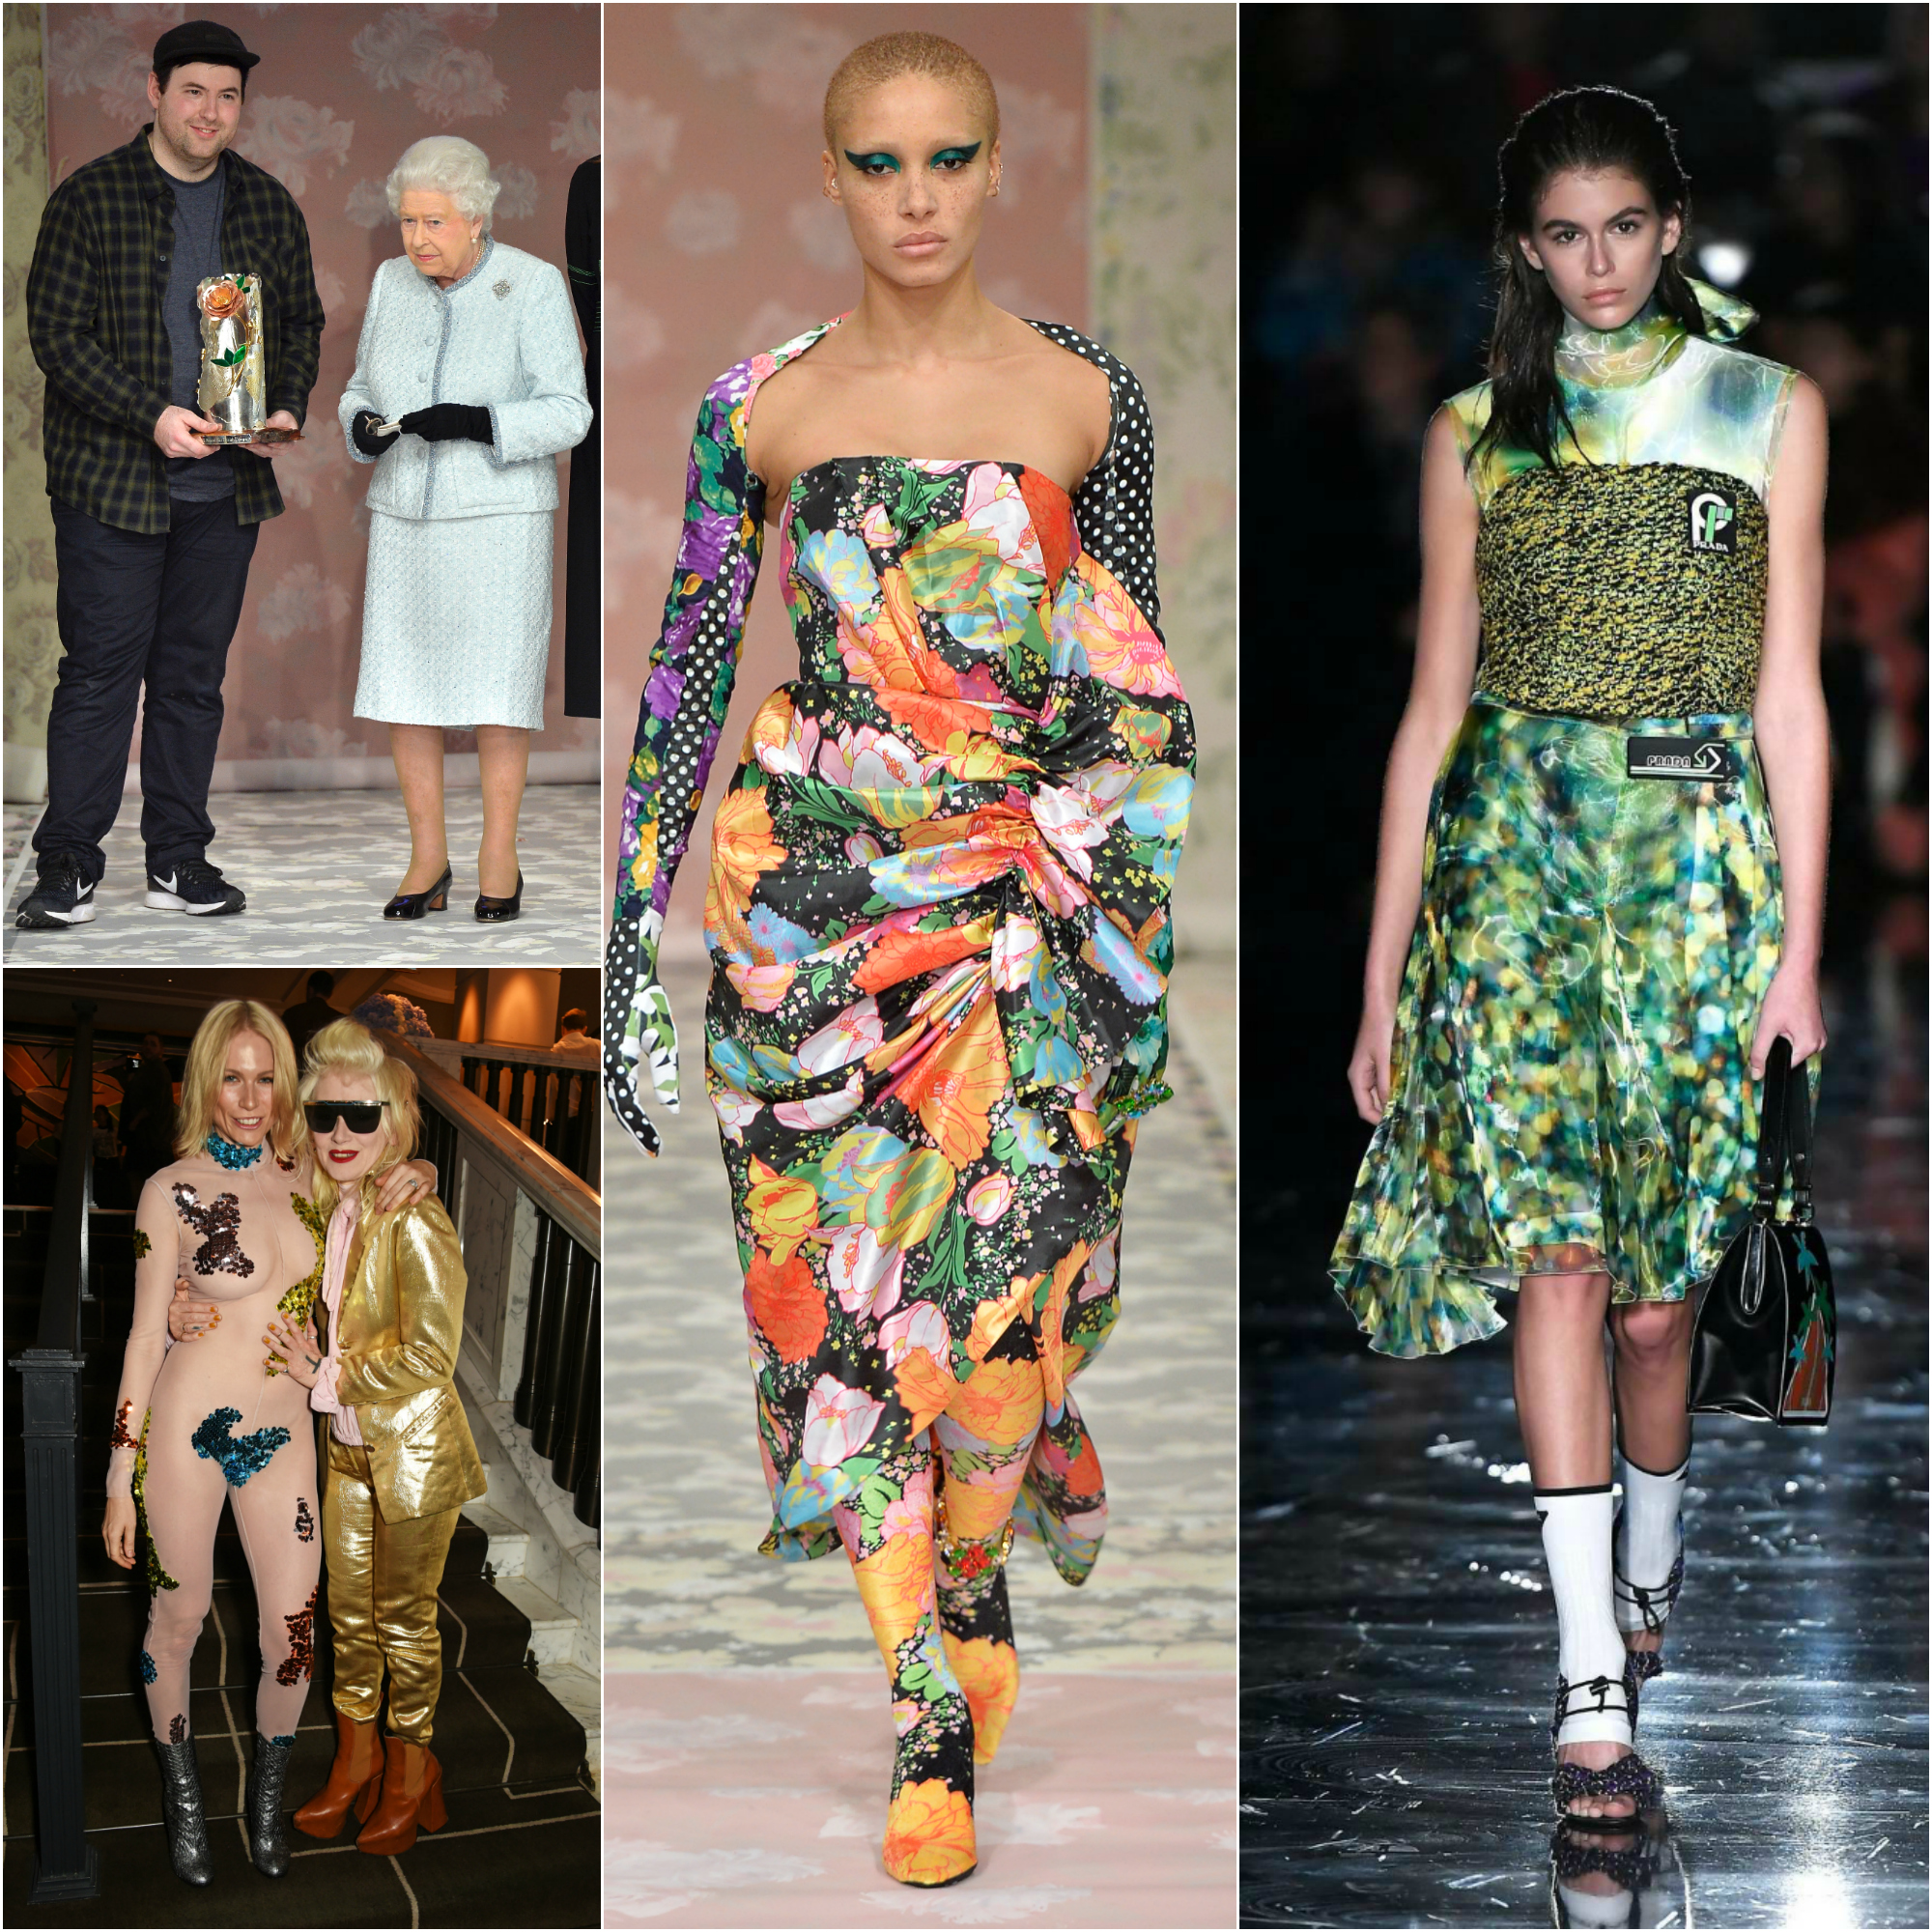 PRADA, RICHARD QUINN & PAM HOGG TO BE HONOURED AT THE  2ND ANNUAL JERSEY STYLE AWARDS